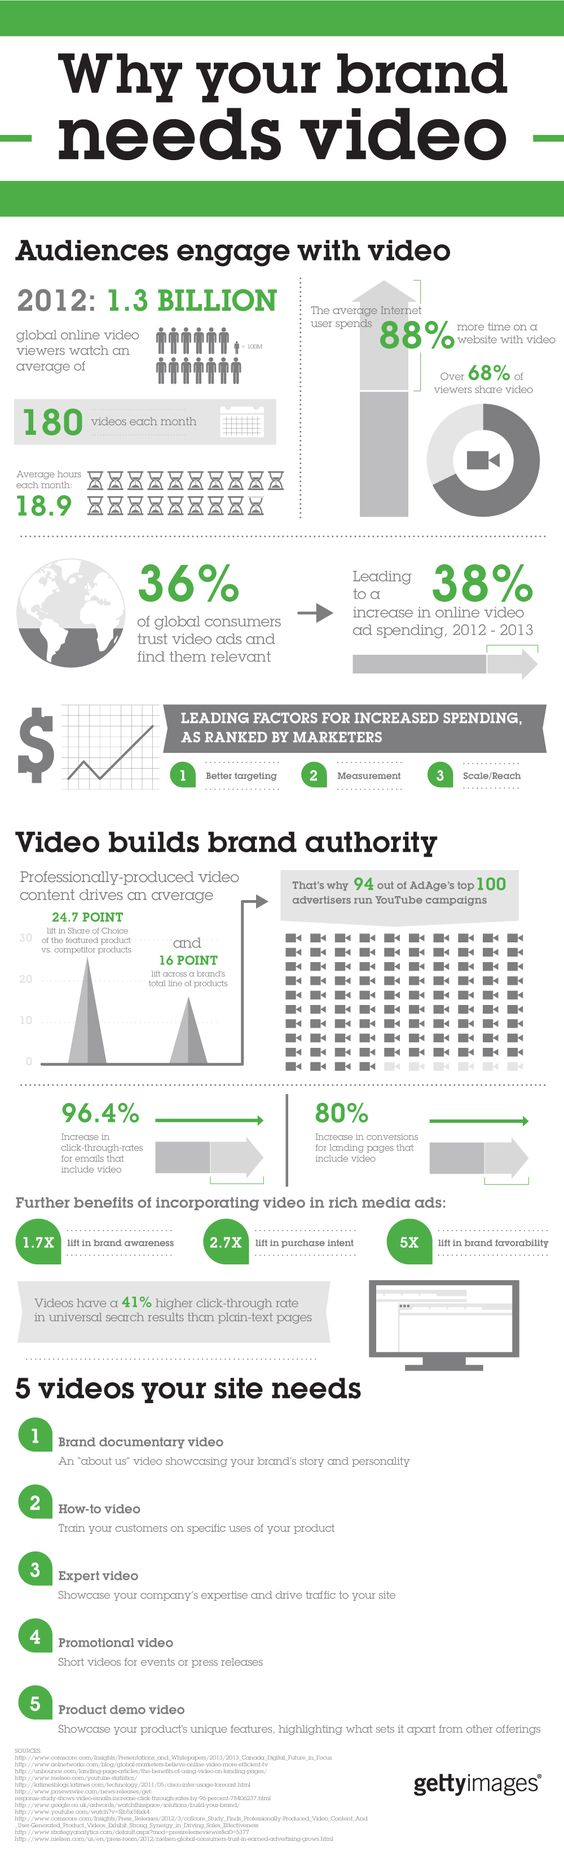 Getty Images provides interesting statistics conveying why your brand needs video